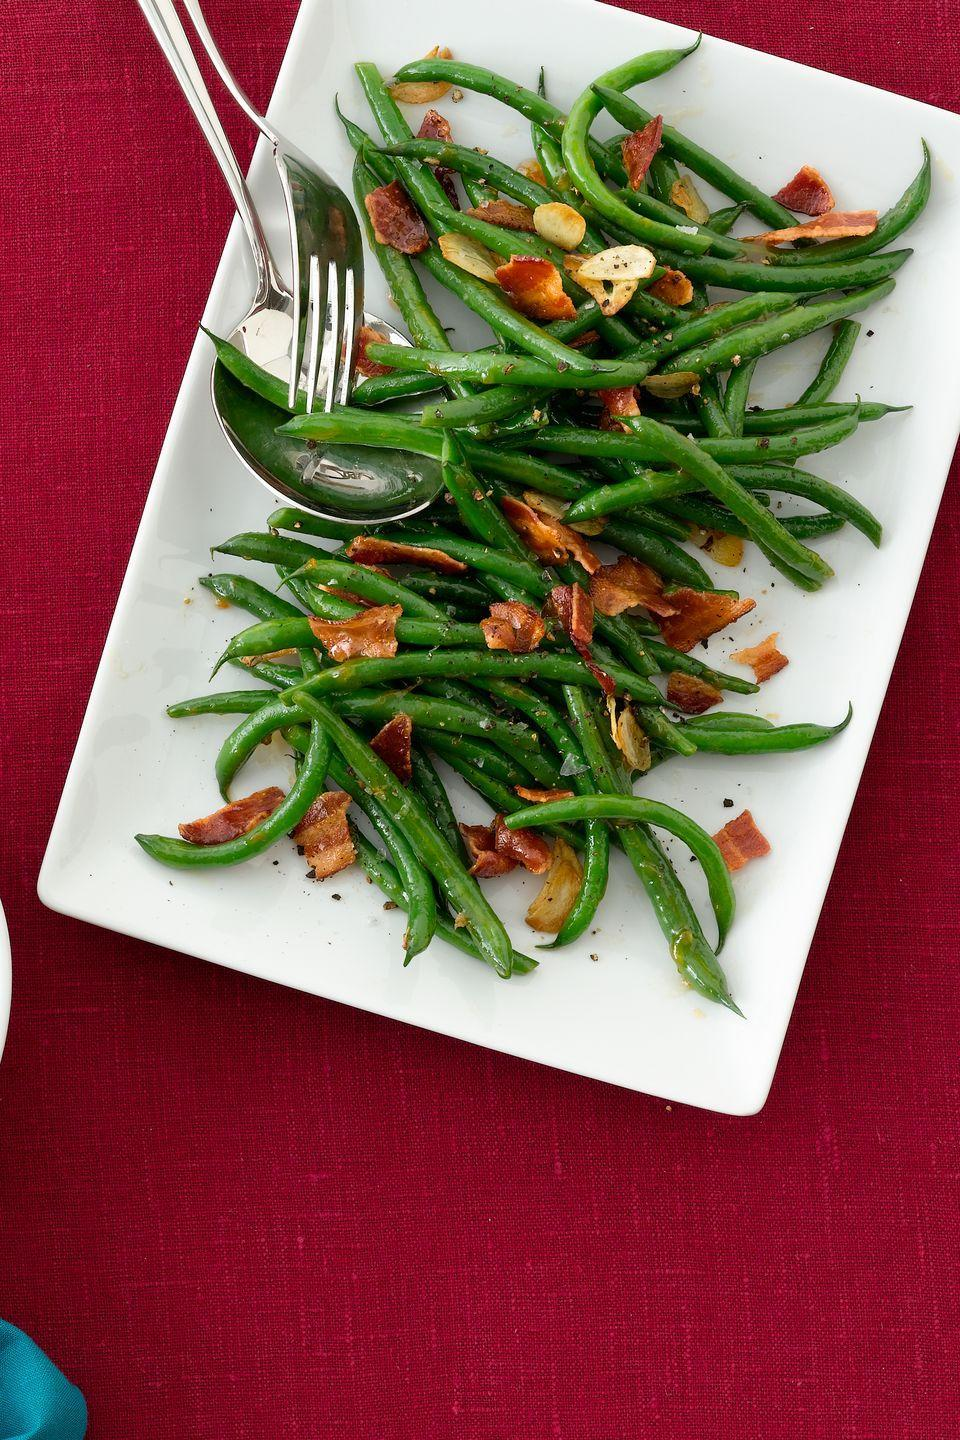 """<p>Ditch the green bean casserole for a dish of sweet and savory contradictions in the form of apricot jam and smoky bacon.</p><p><a href=""""https://www.womansday.com/food-recipes/food-drinks/recipes/a11697/apricot-glazed-green-beans-recipe-wdy1112/"""" rel=""""nofollow noopener"""" target=""""_blank"""" data-ylk=""""slk:Get the Apricot-Glazed Green Beans recipe."""" class=""""link rapid-noclick-resp""""><em><strong>Get the Apricot-Glazed Green Beans recipe.</strong></em></a></p>"""